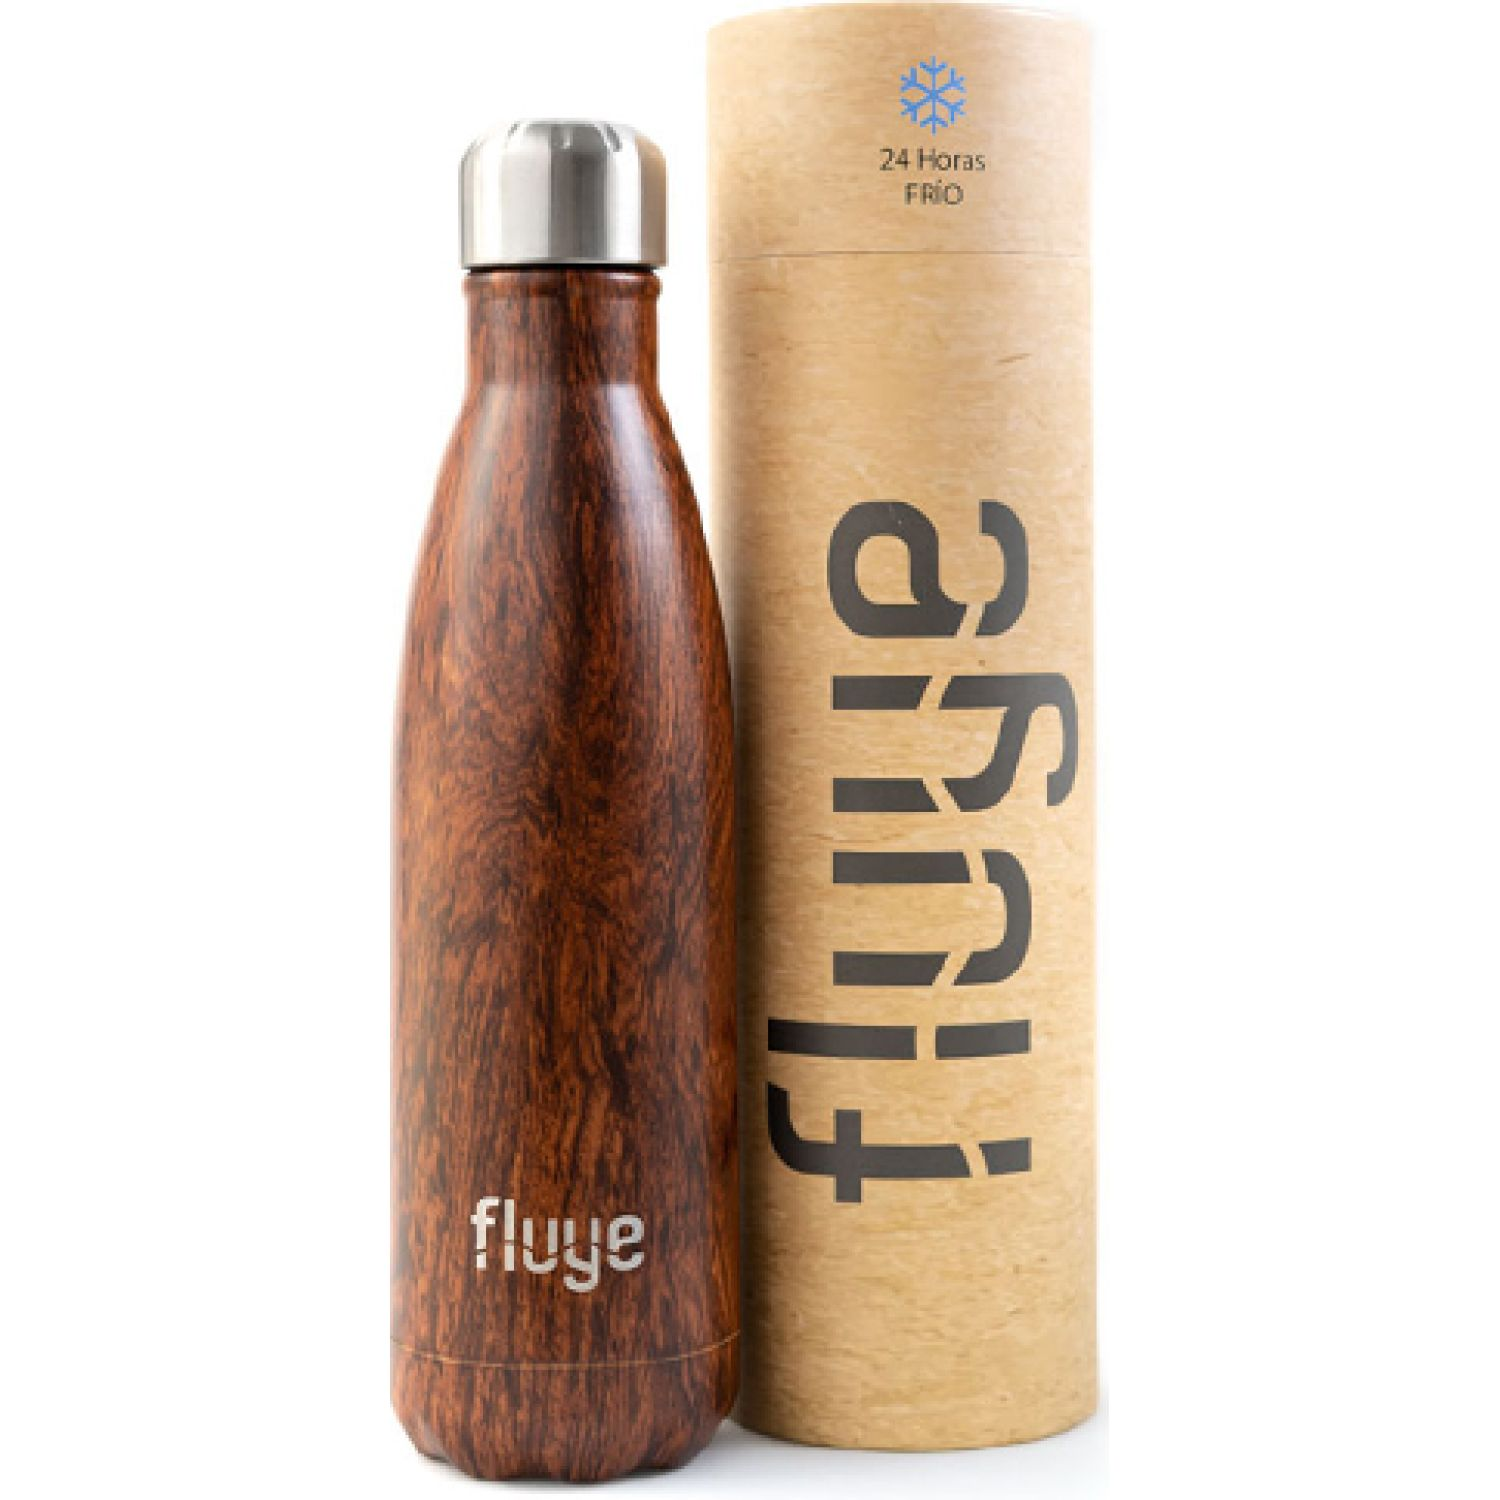 Fluye Bottle Fb Manu 500ml Marron Botellas de agua